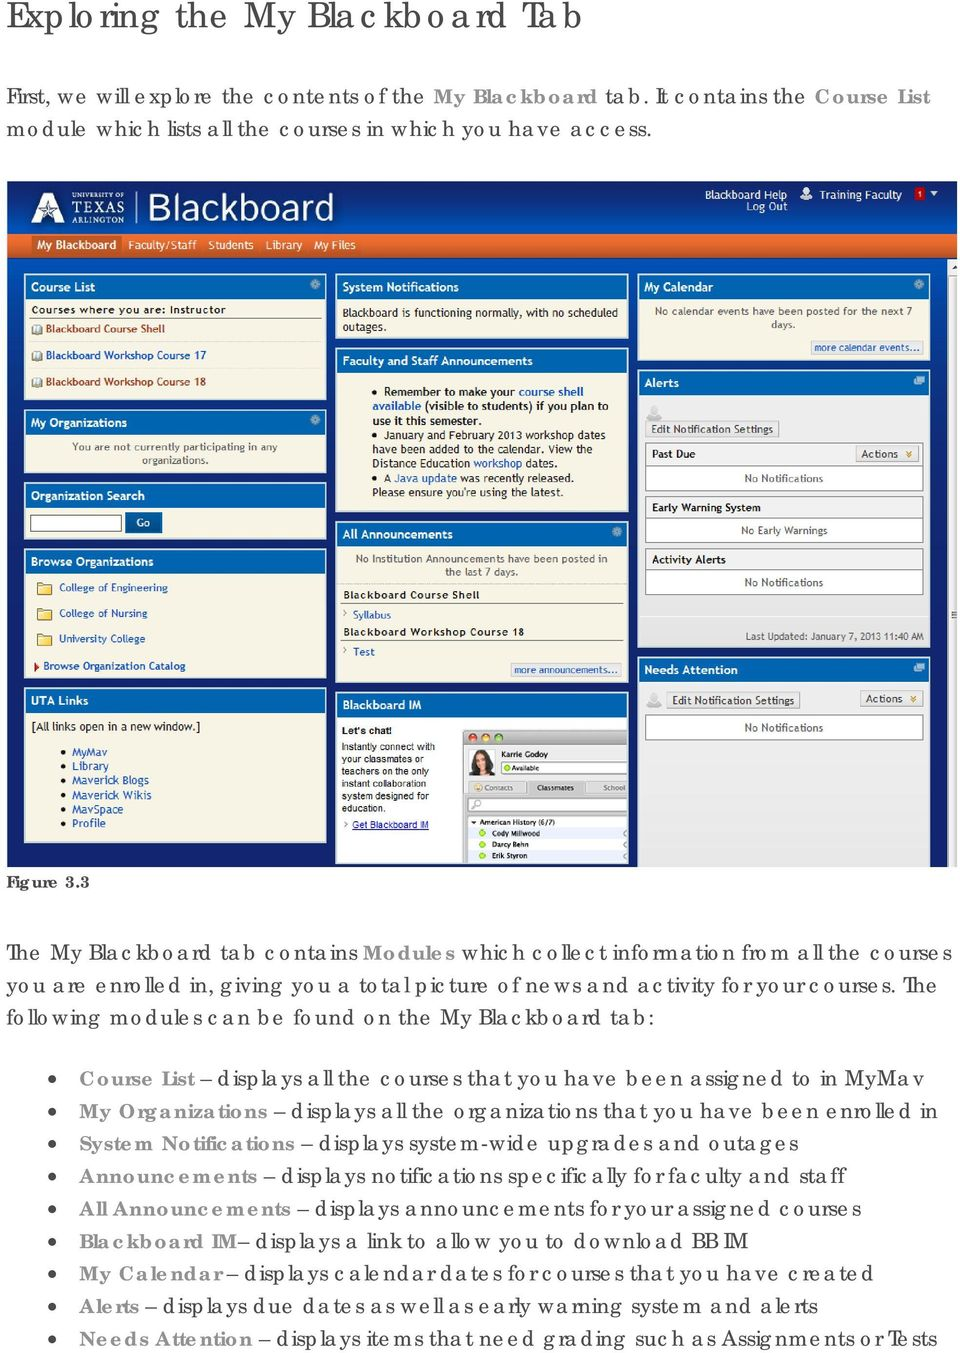 The following modules can be found on the My Blackboard tab: Course List displays all the courses that you have been assigned to in MyMav My Organizations displays all the organizations that you have